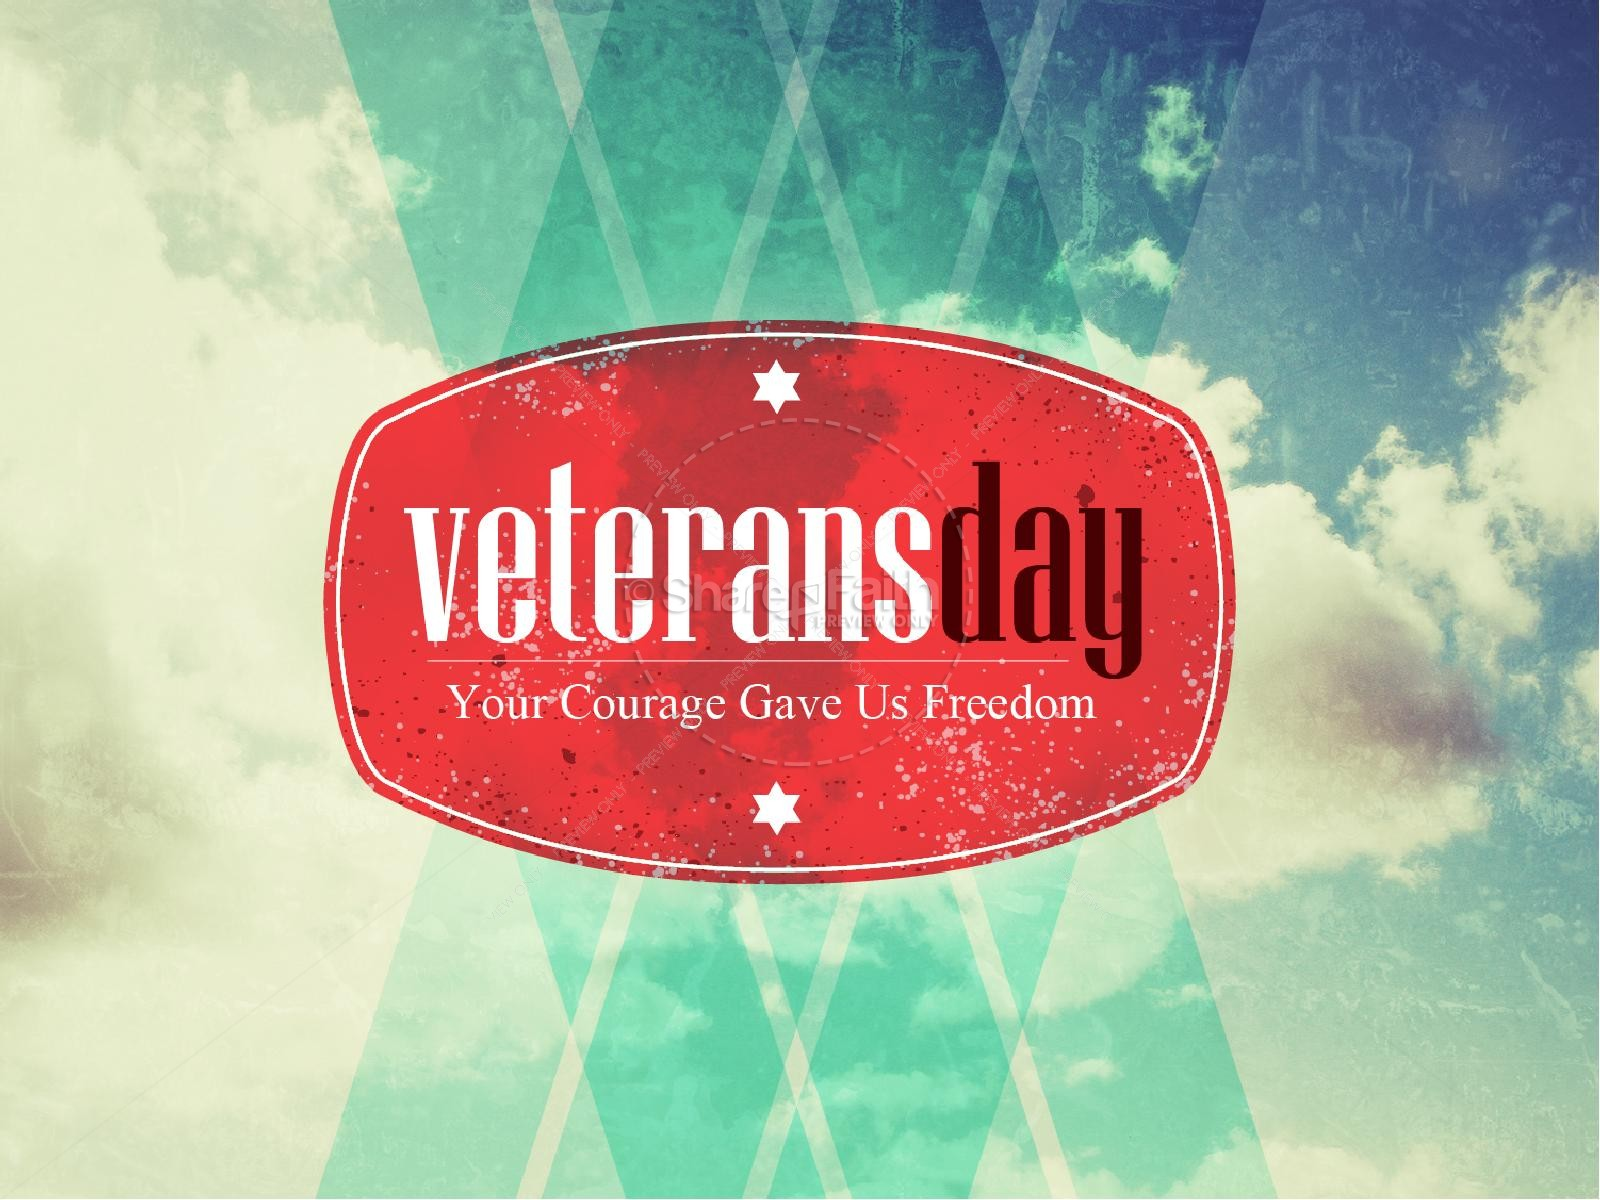 courage and freedom veterans day powerpoint | powerpoint sermons, Powerpoint templates